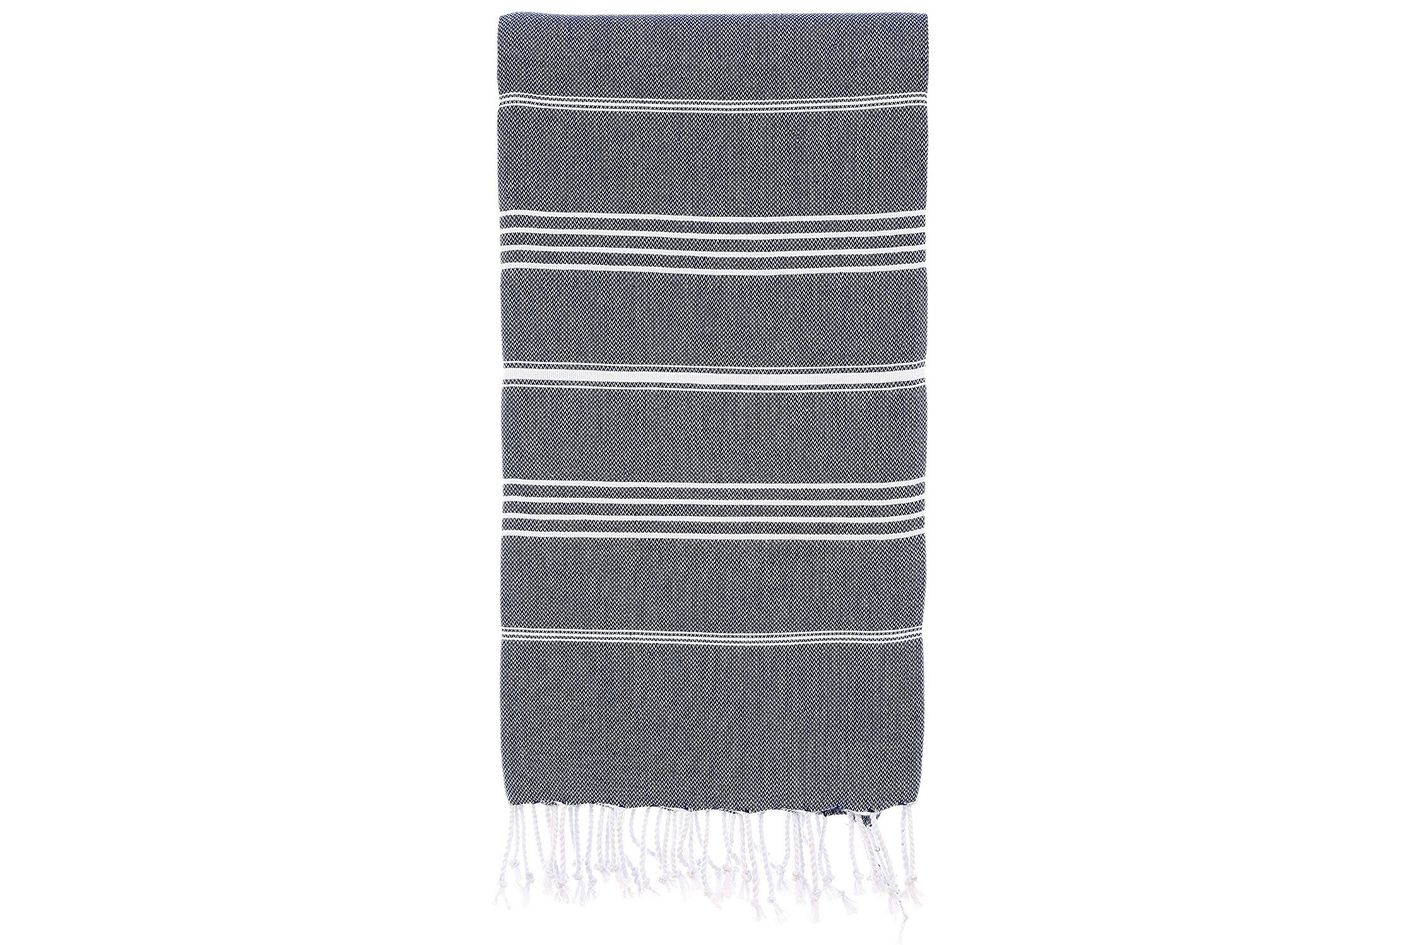 Decorative Hand Towels For Powder Room 10 Best Bath Towels Luxury Decorative Affordable Towels